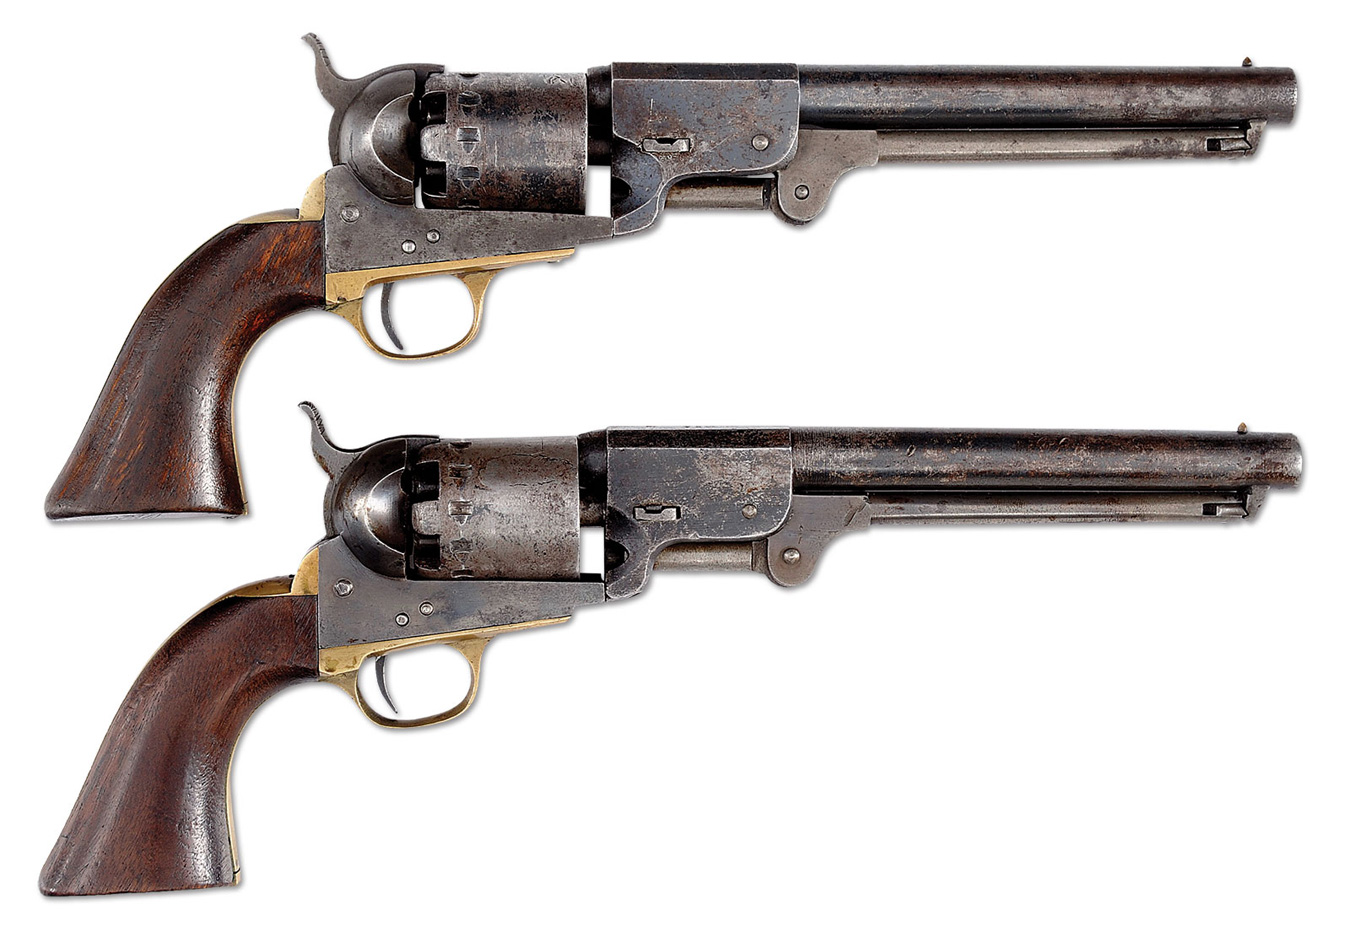 Consecutively Numbered Confederate Pistols Known, Rigdon & Ansley Revolvers